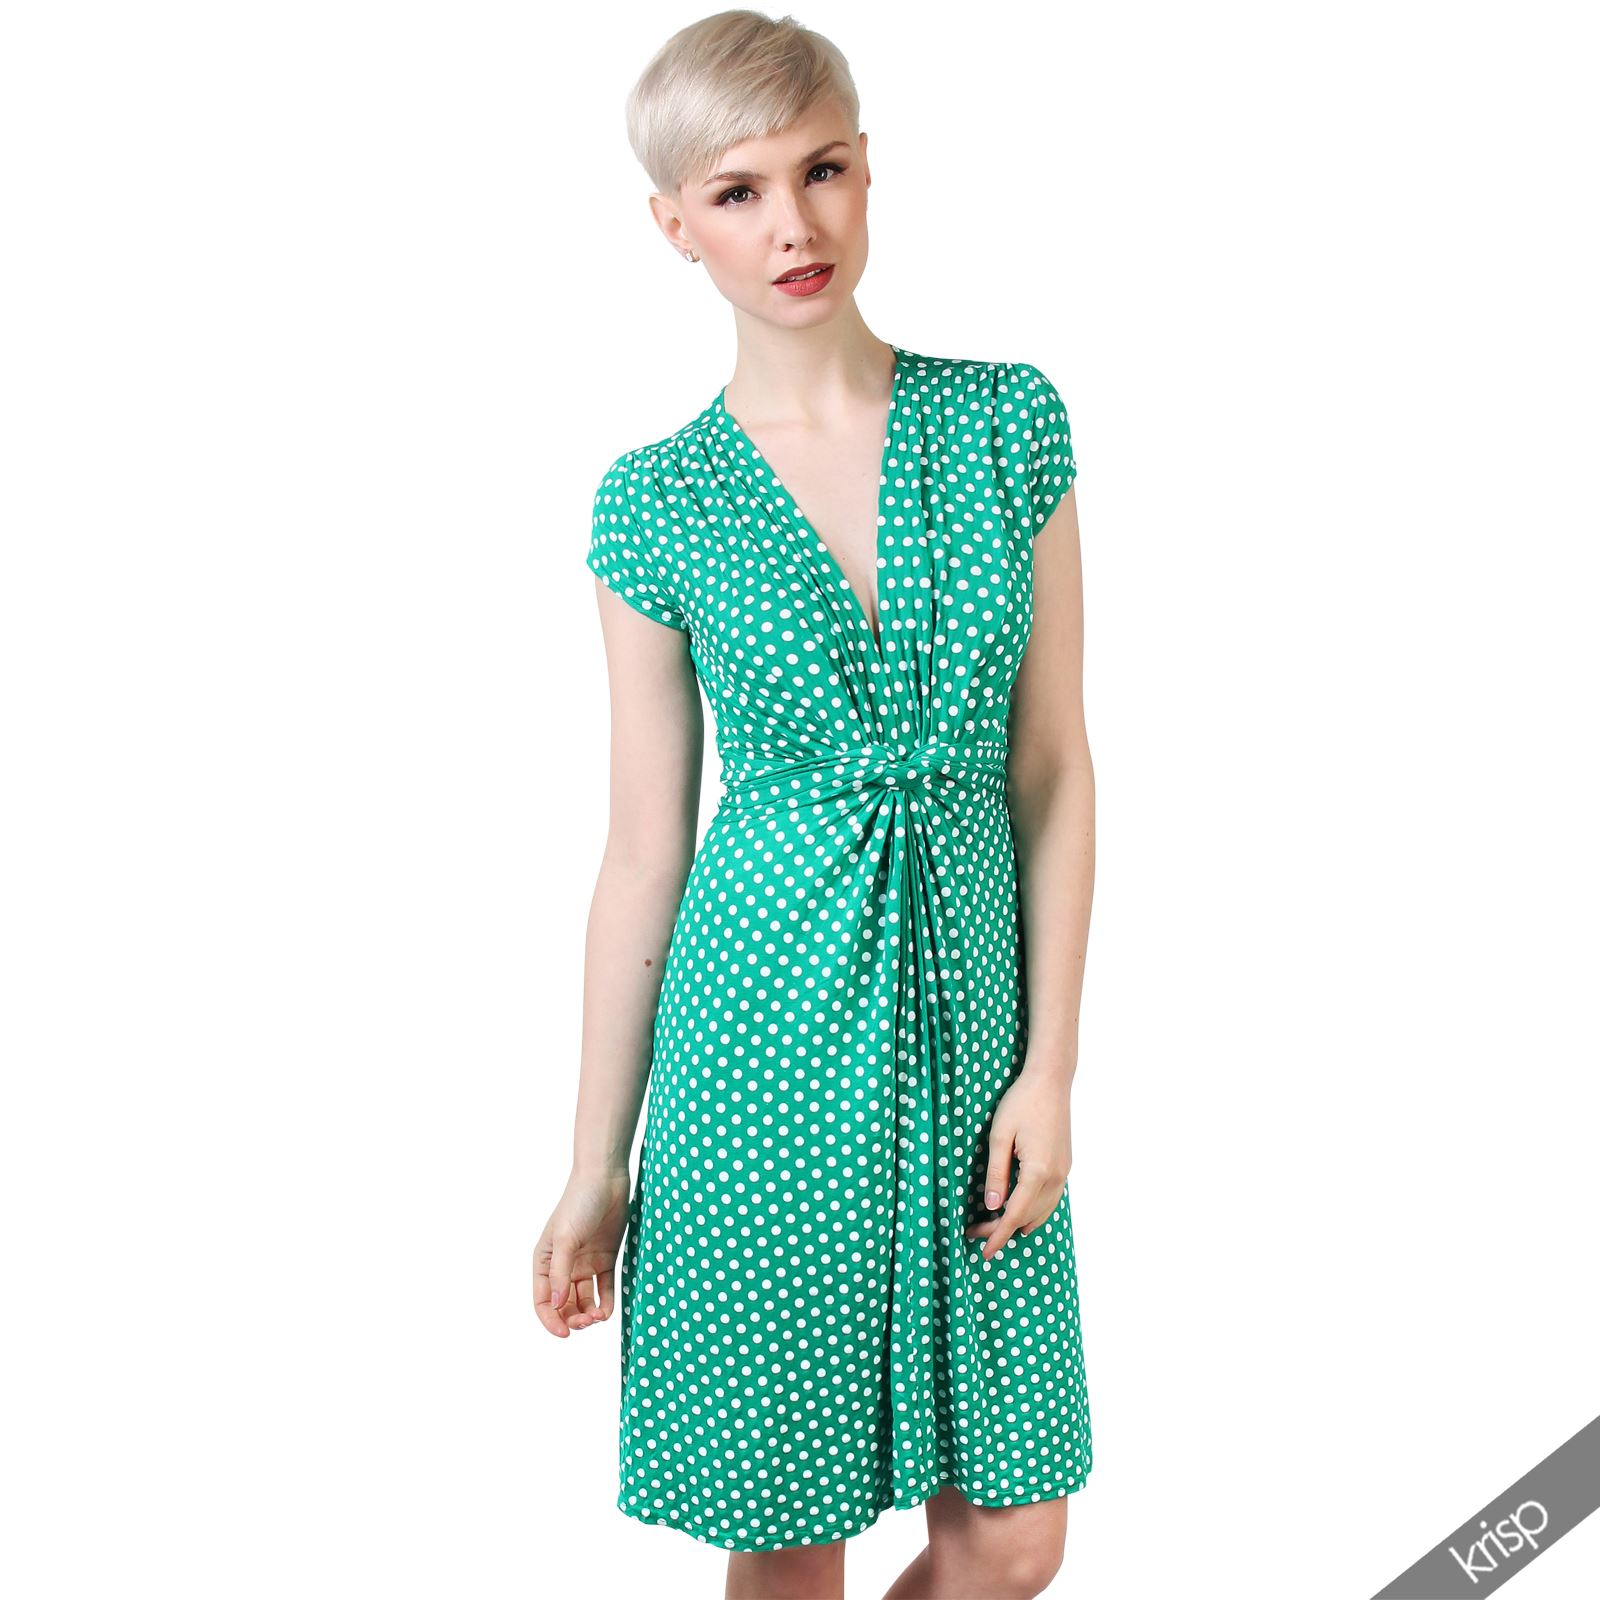 Womens-Polka-Dot-Retro-Dress-Pleated-Skirt-Wrap-Mini-V-Neck-Top-Swing-Party thumbnail 12